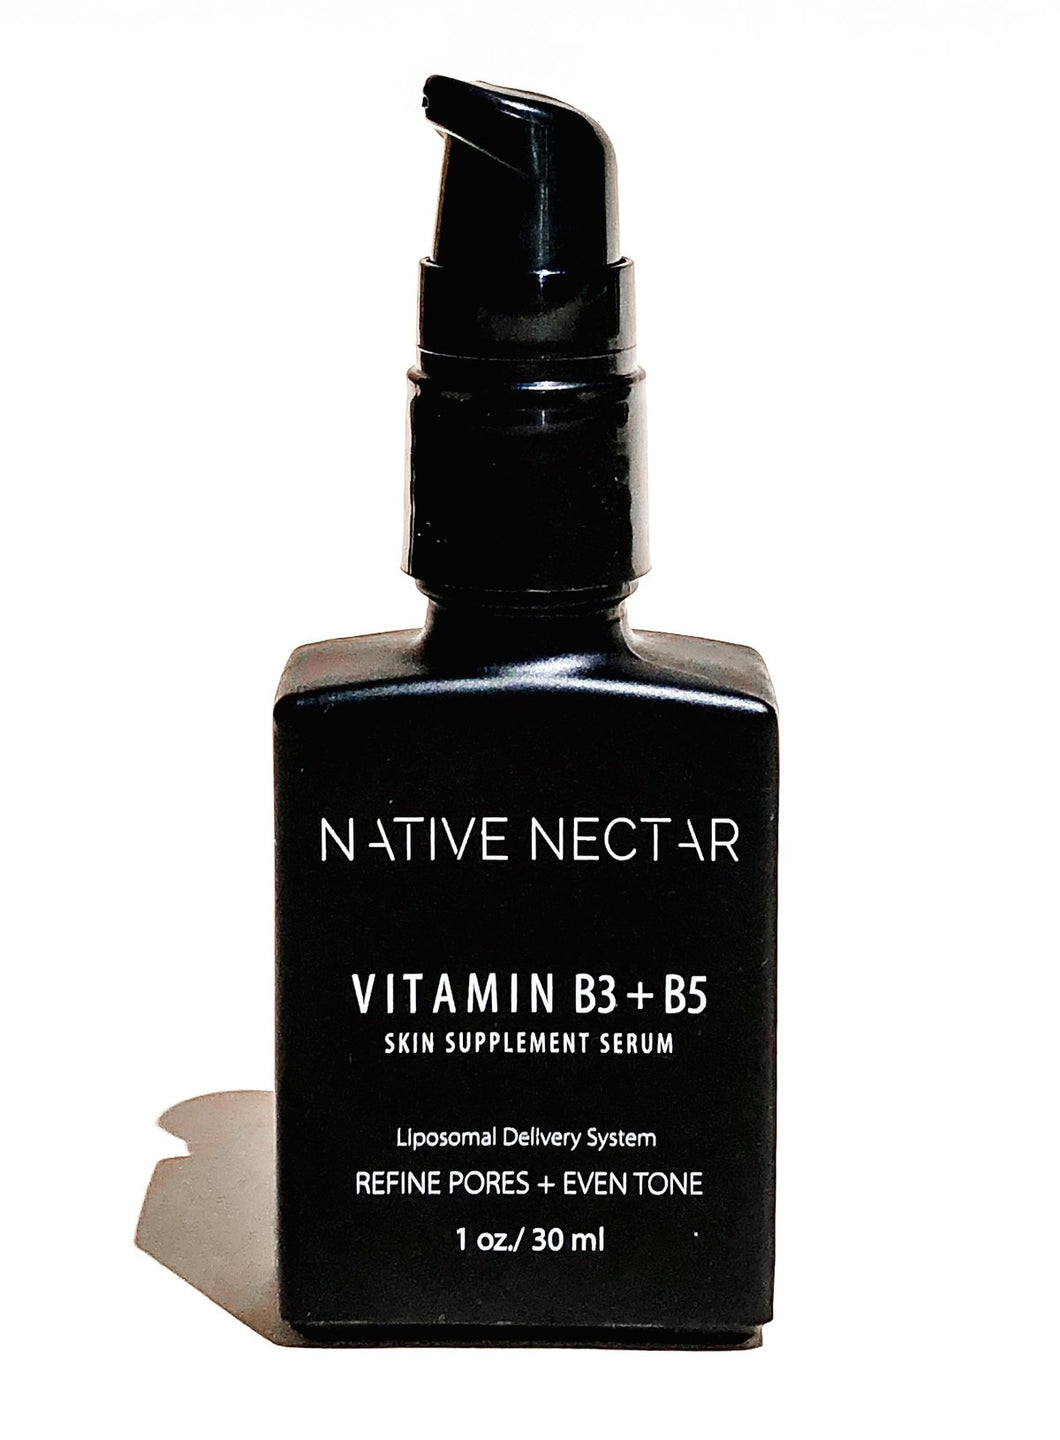 Vitamin B3 + B5 Skin Supplement Serum